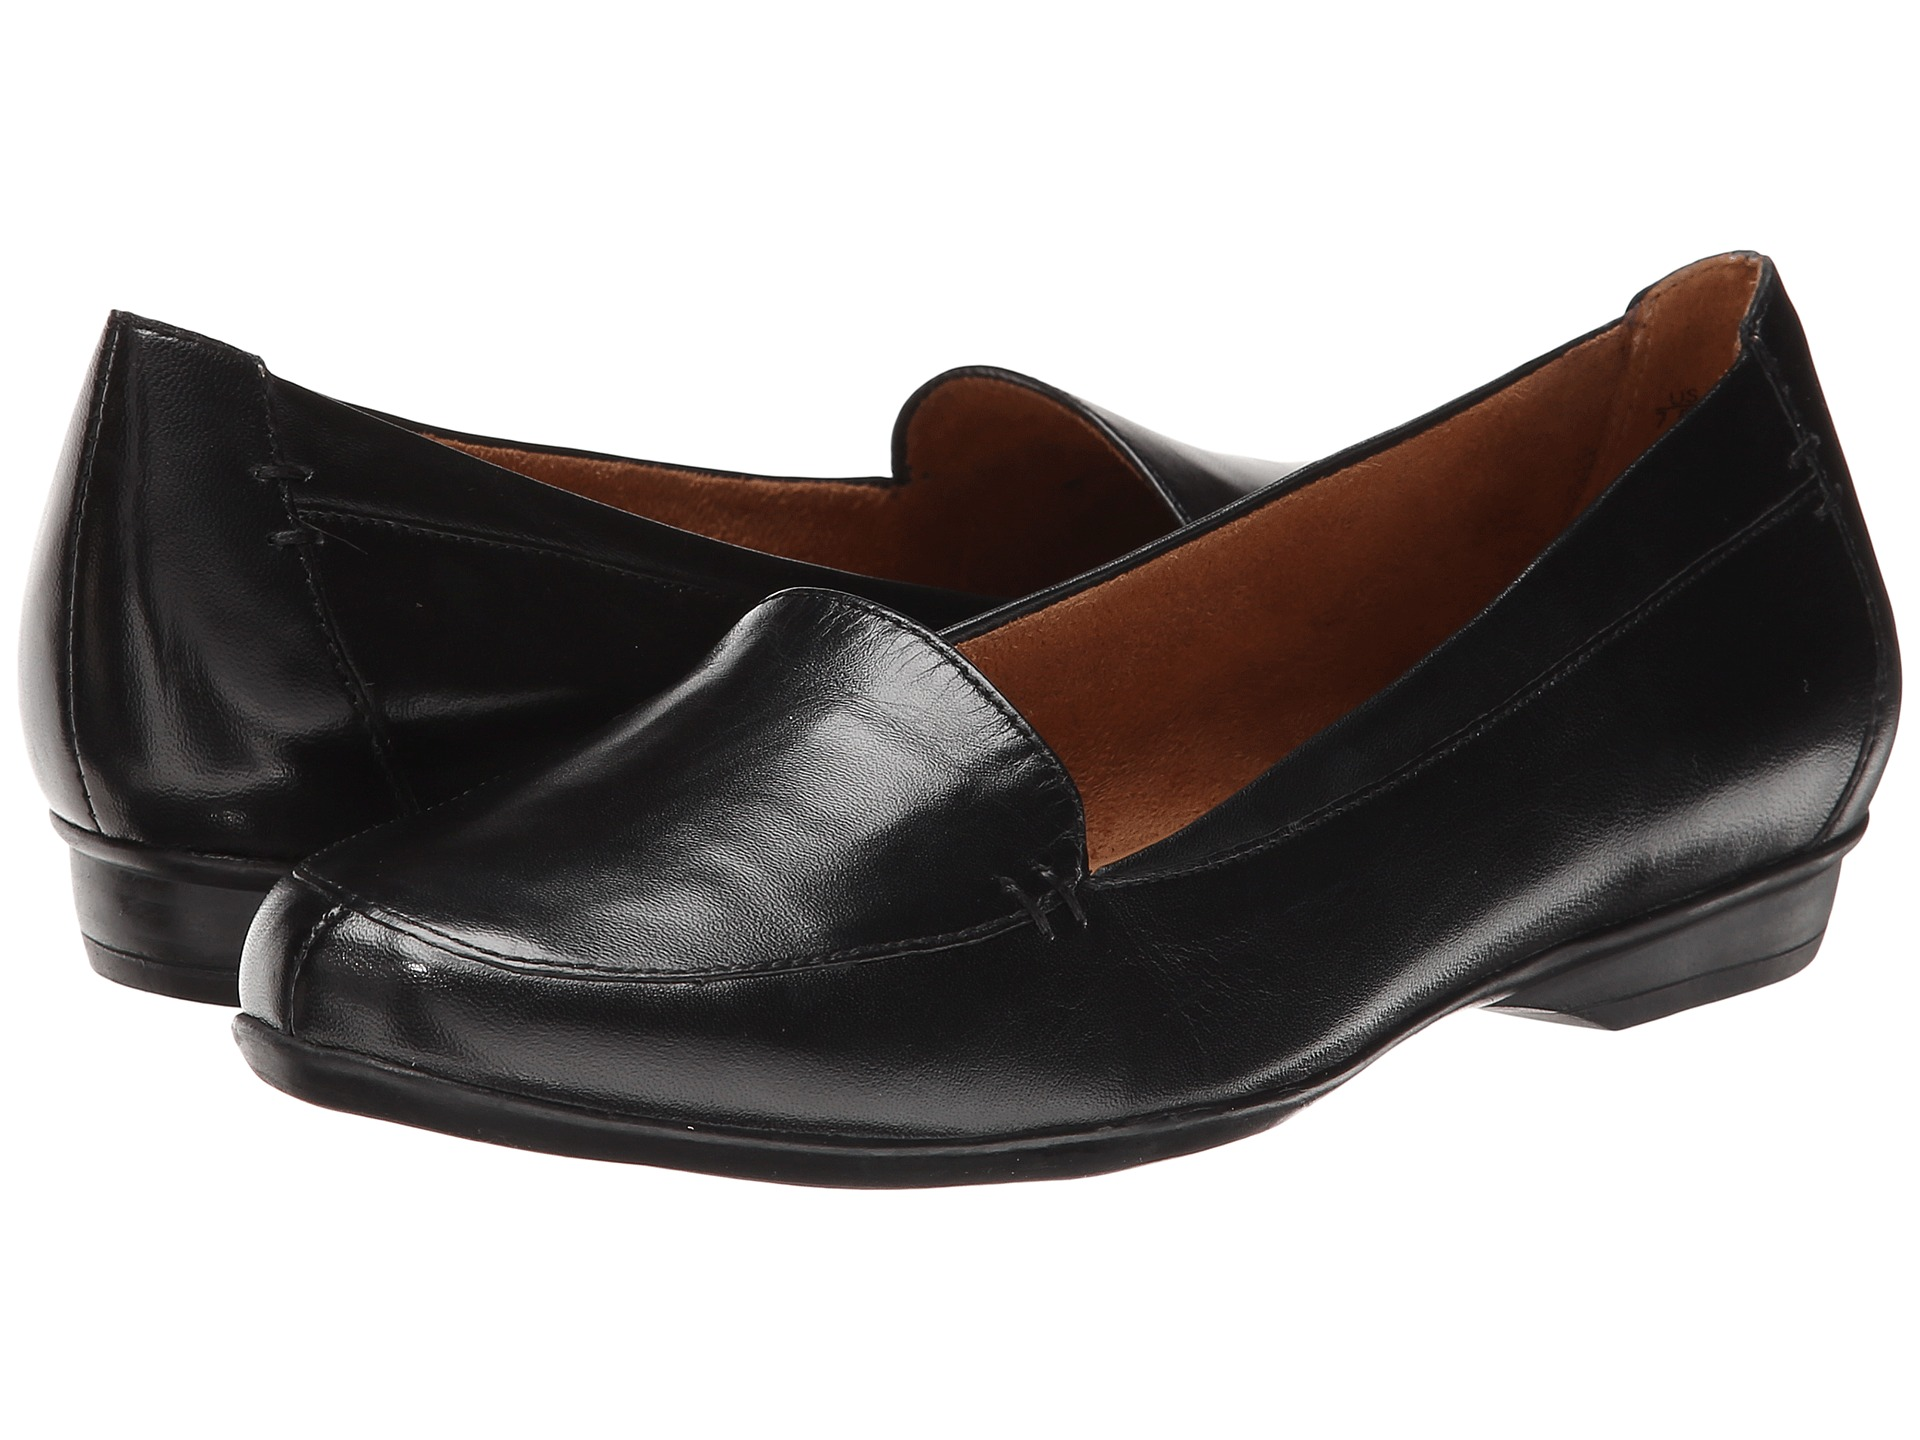 Naturalizer Black Leather Shoes